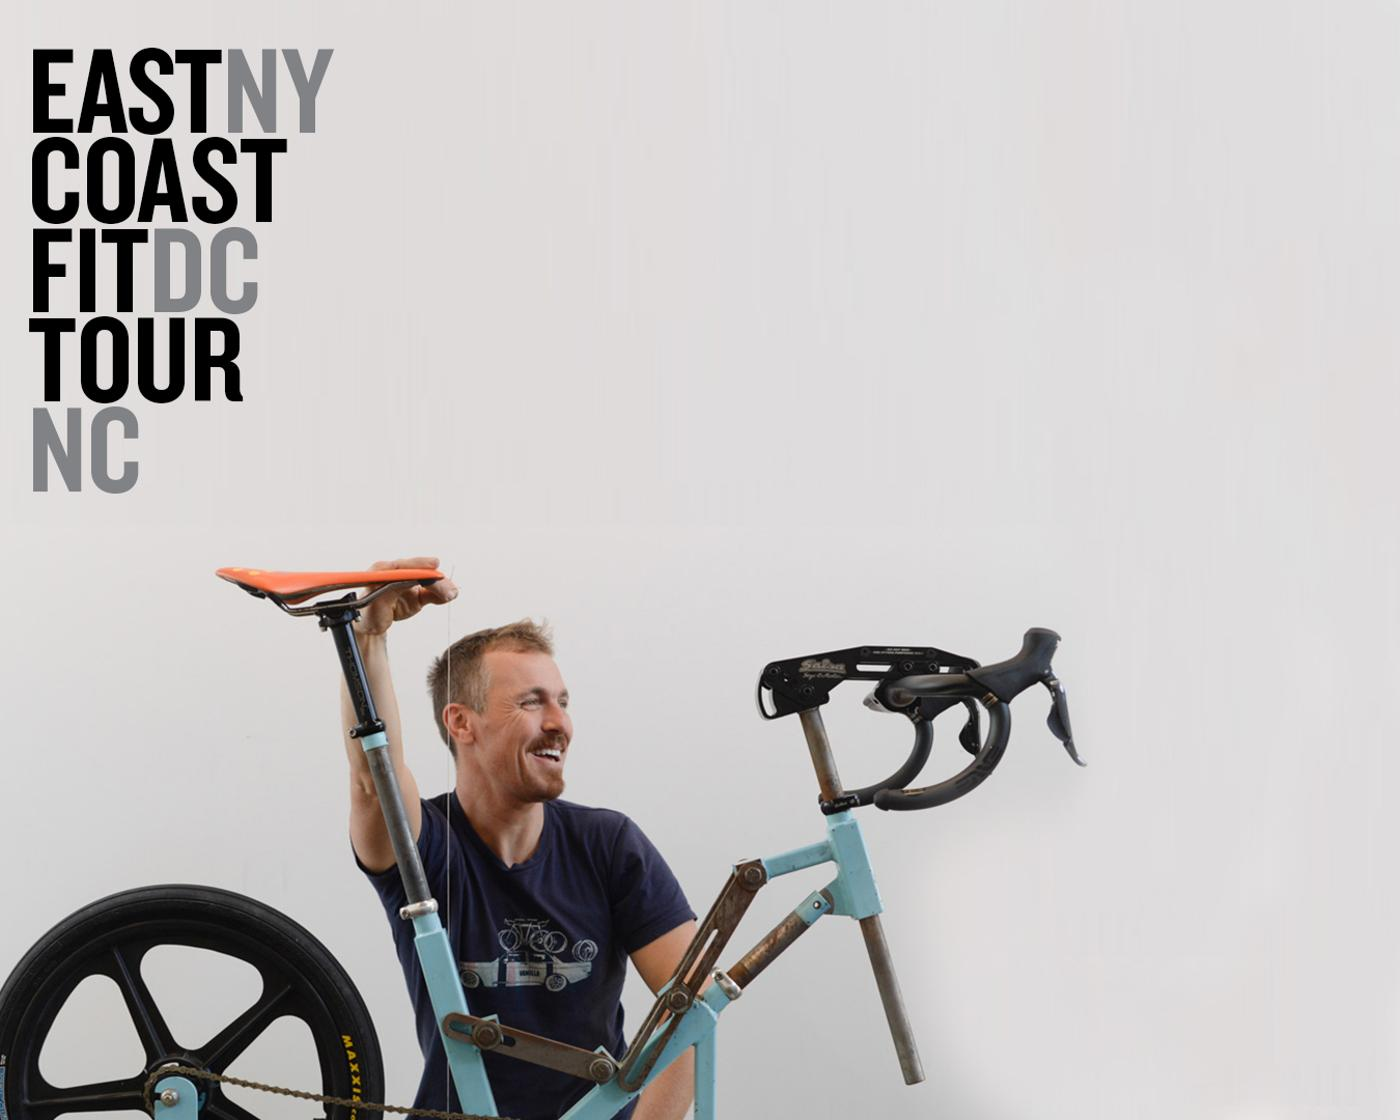 Speedvagen Brings the Fit Tour to the East Coast